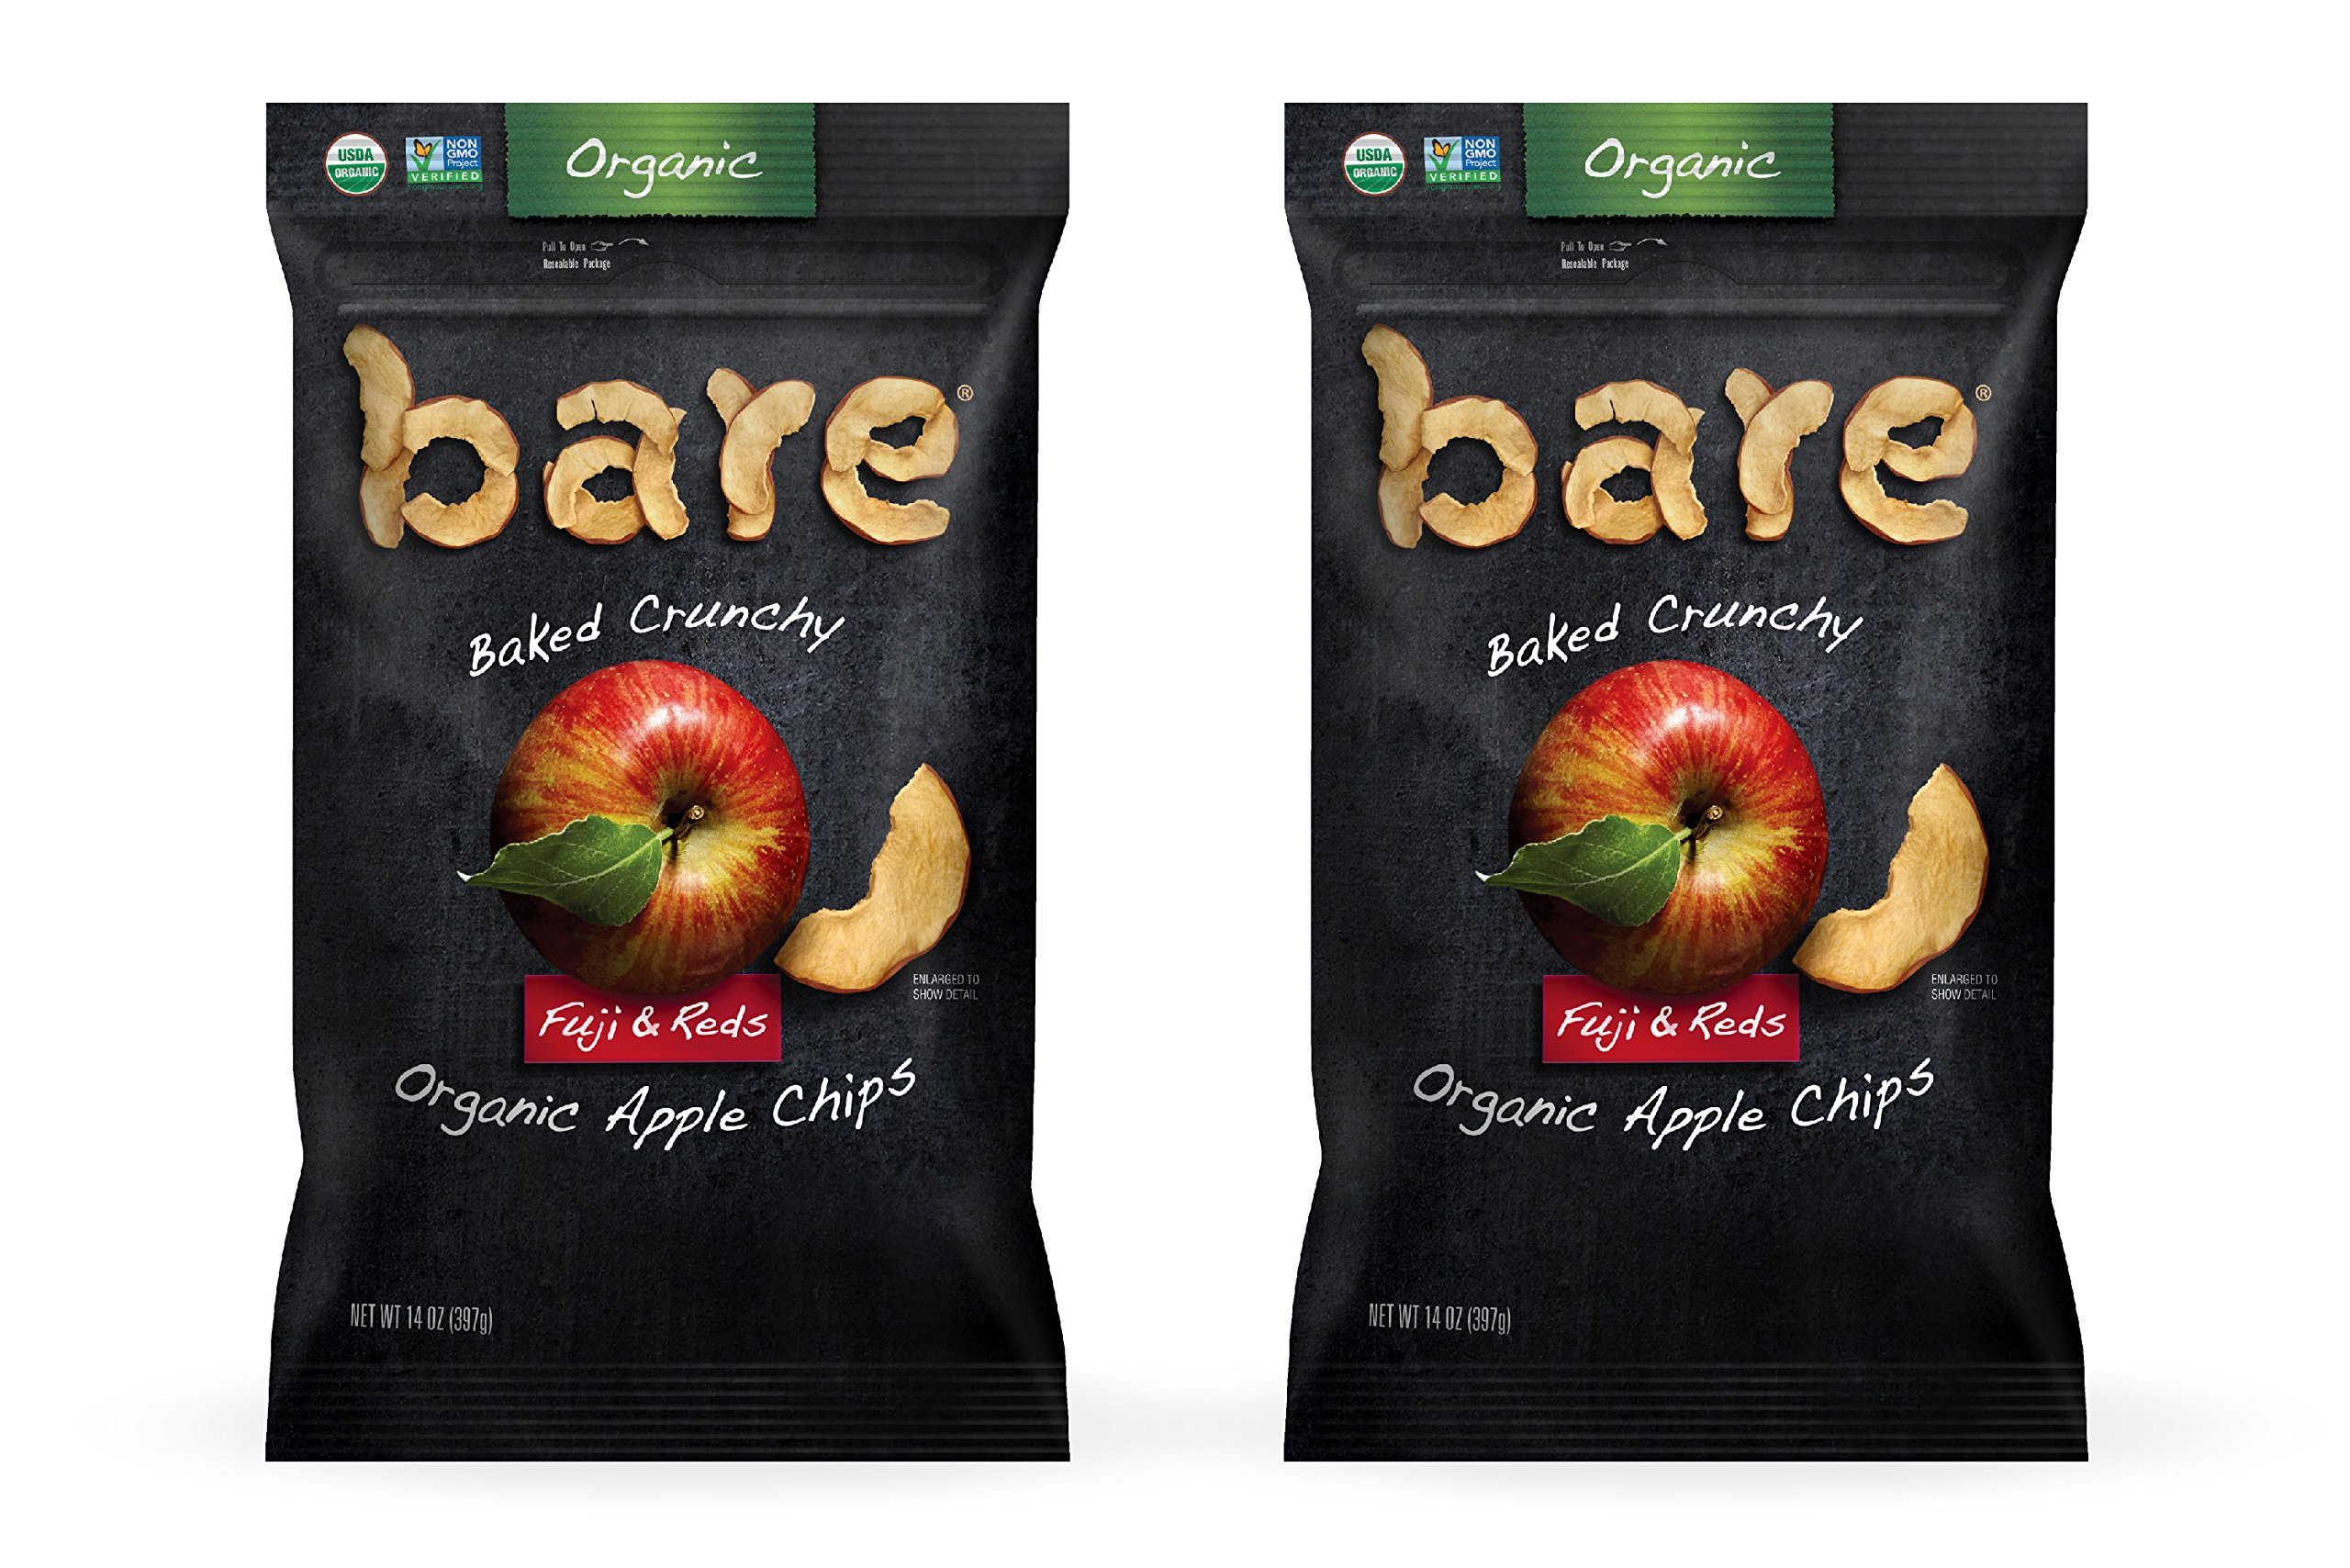 Bare Baked Crunchy Organic Apple Chips, Fuji & Reds, Gluten Free, 14 Ounce Bag, 2 Count by Bare